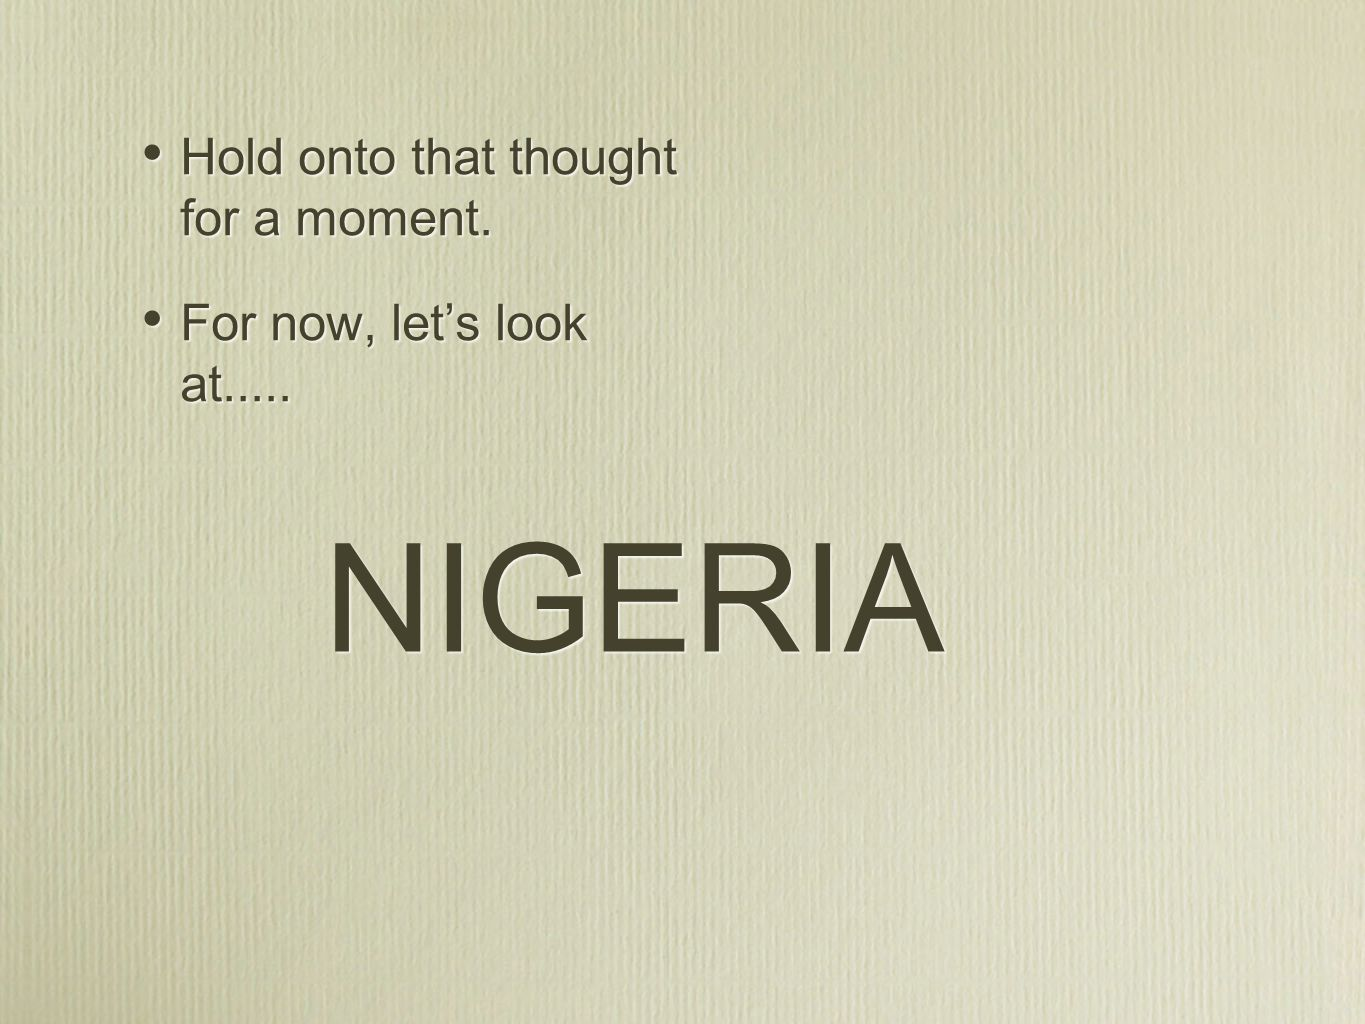 NIGERIA Hold onto that thought for a moment. For now, let's look at.....